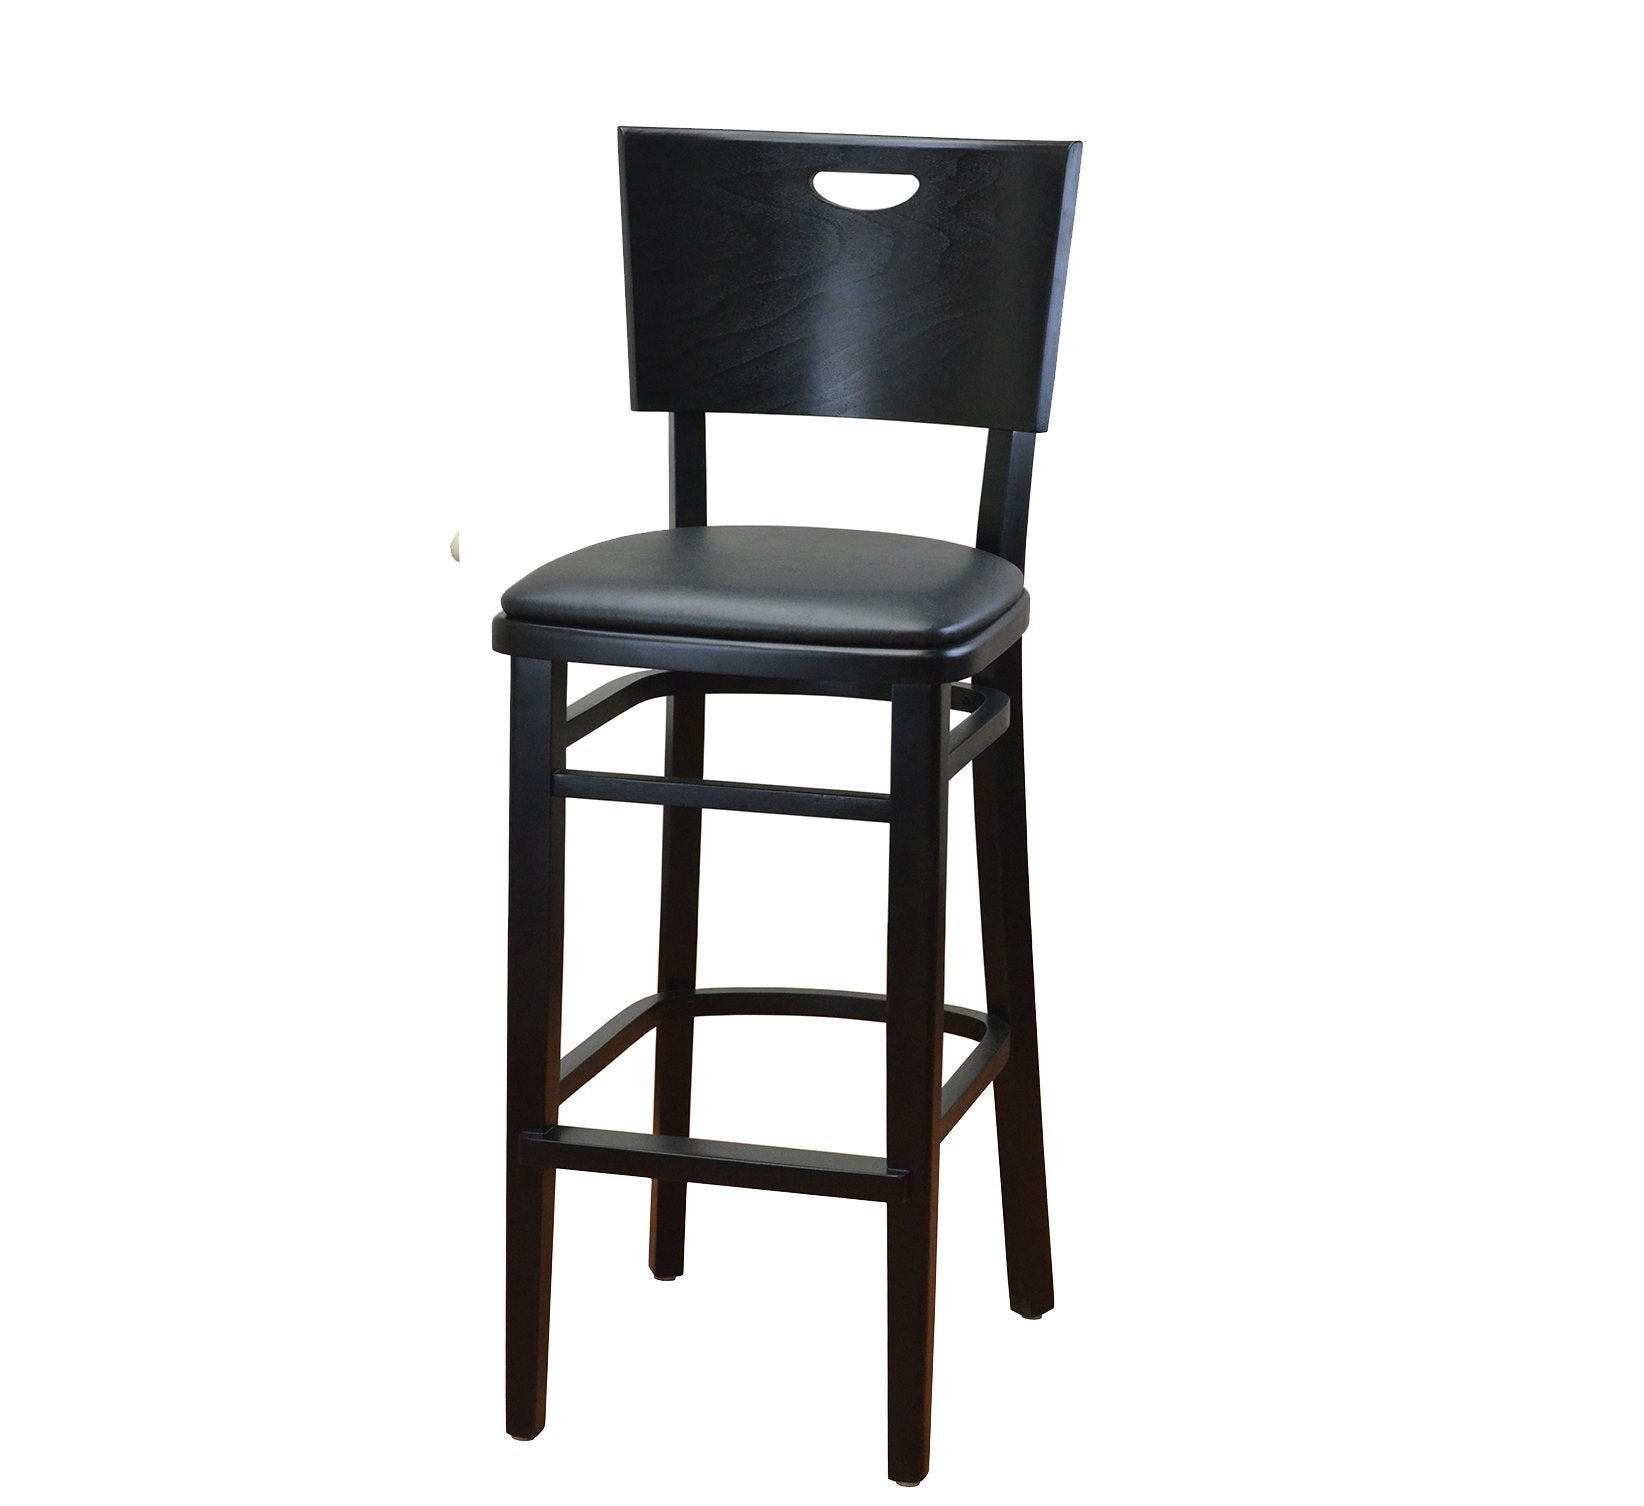 DHC 252B-BLK Black Finish Curved Back, Wood Barstool